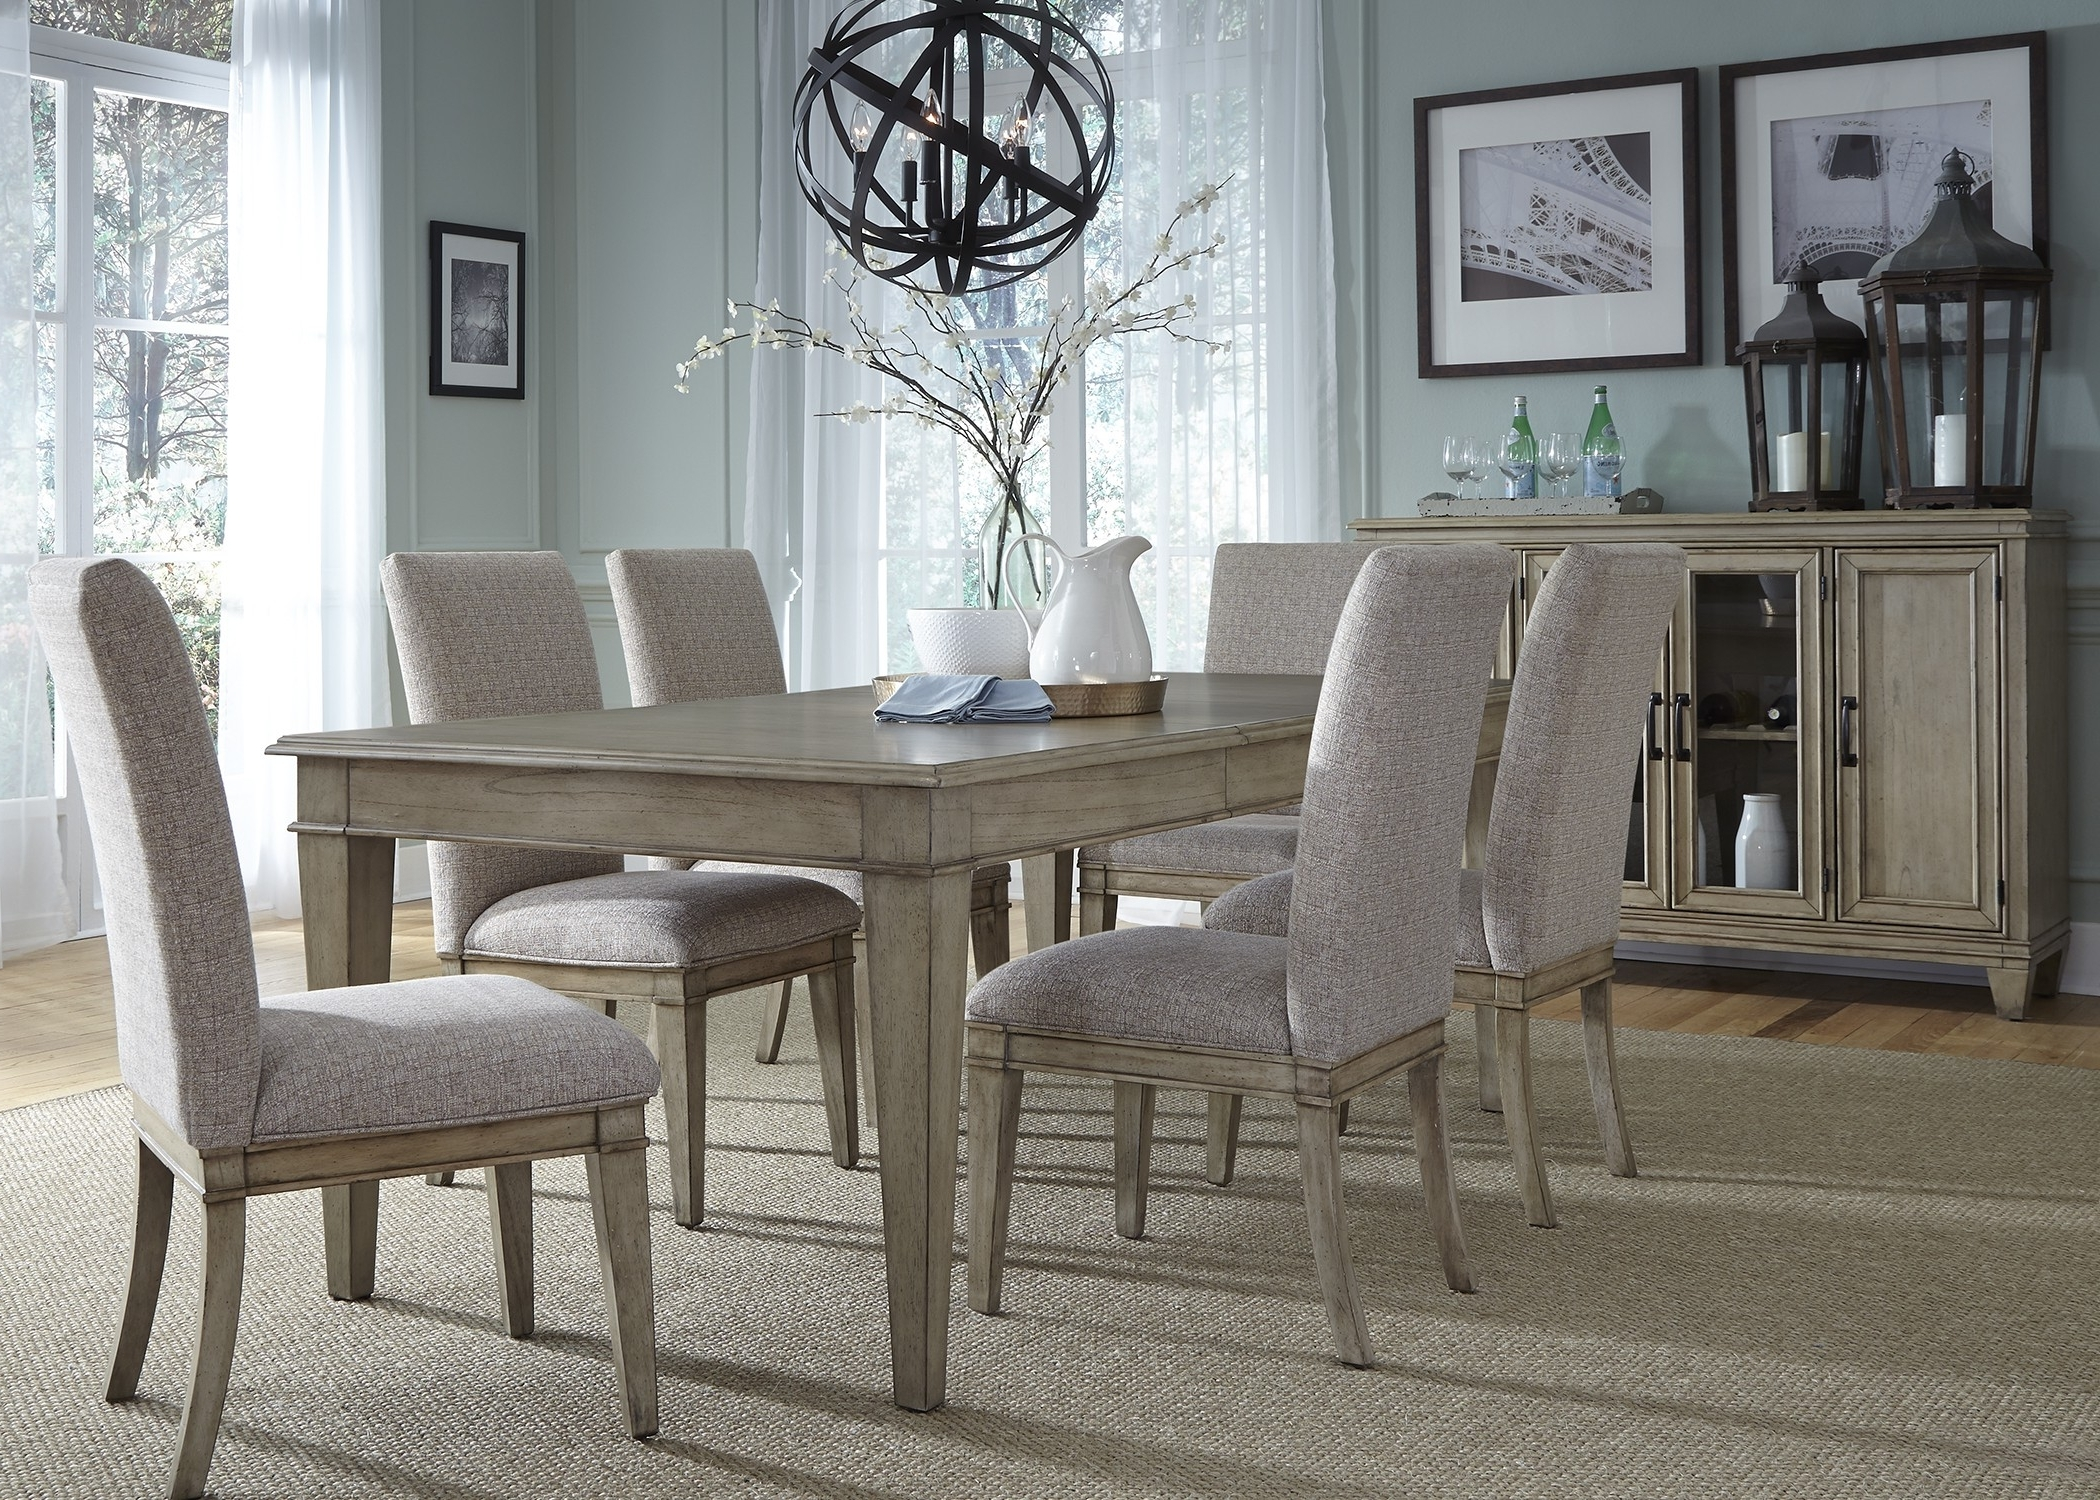 Jaxon Grey 6 Piece Rectangle Extension Dining Sets With Bench & Uph Chairs With Regard To Current (View 20 of 25)